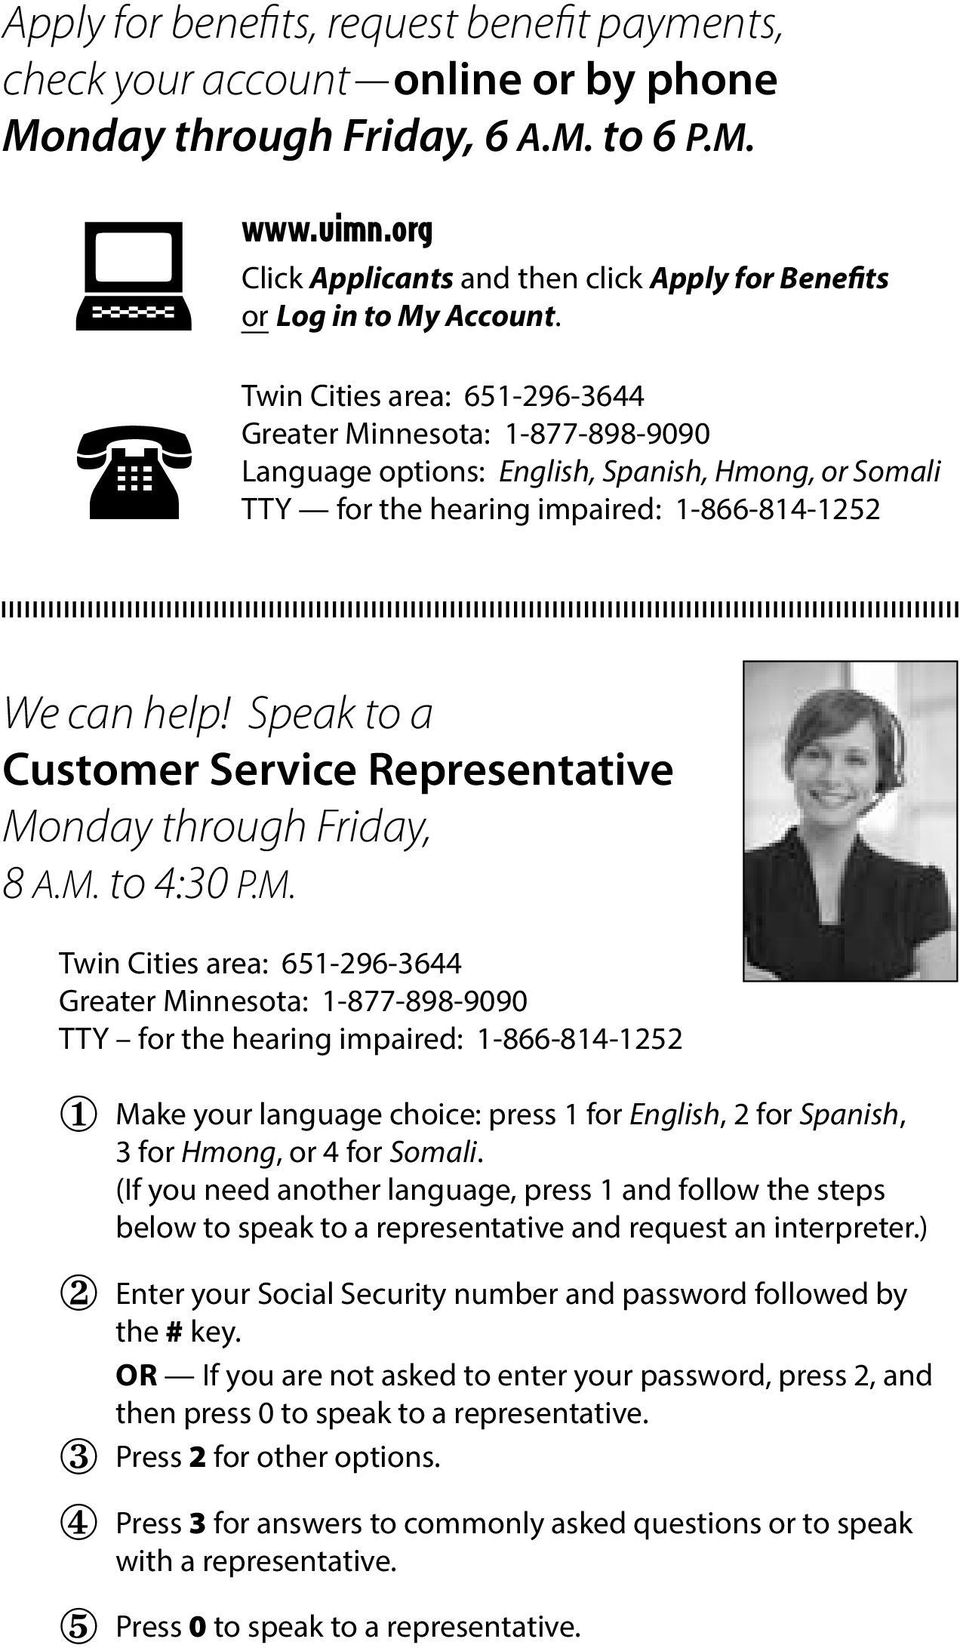 TTY Twin Cities area: 651-296-3644 Greater Minnesota: 1-877-898-9090 Language options: English, Spanish, Hmong, or Somali for the hearing impaired: 1-866-814-1252 We can help!